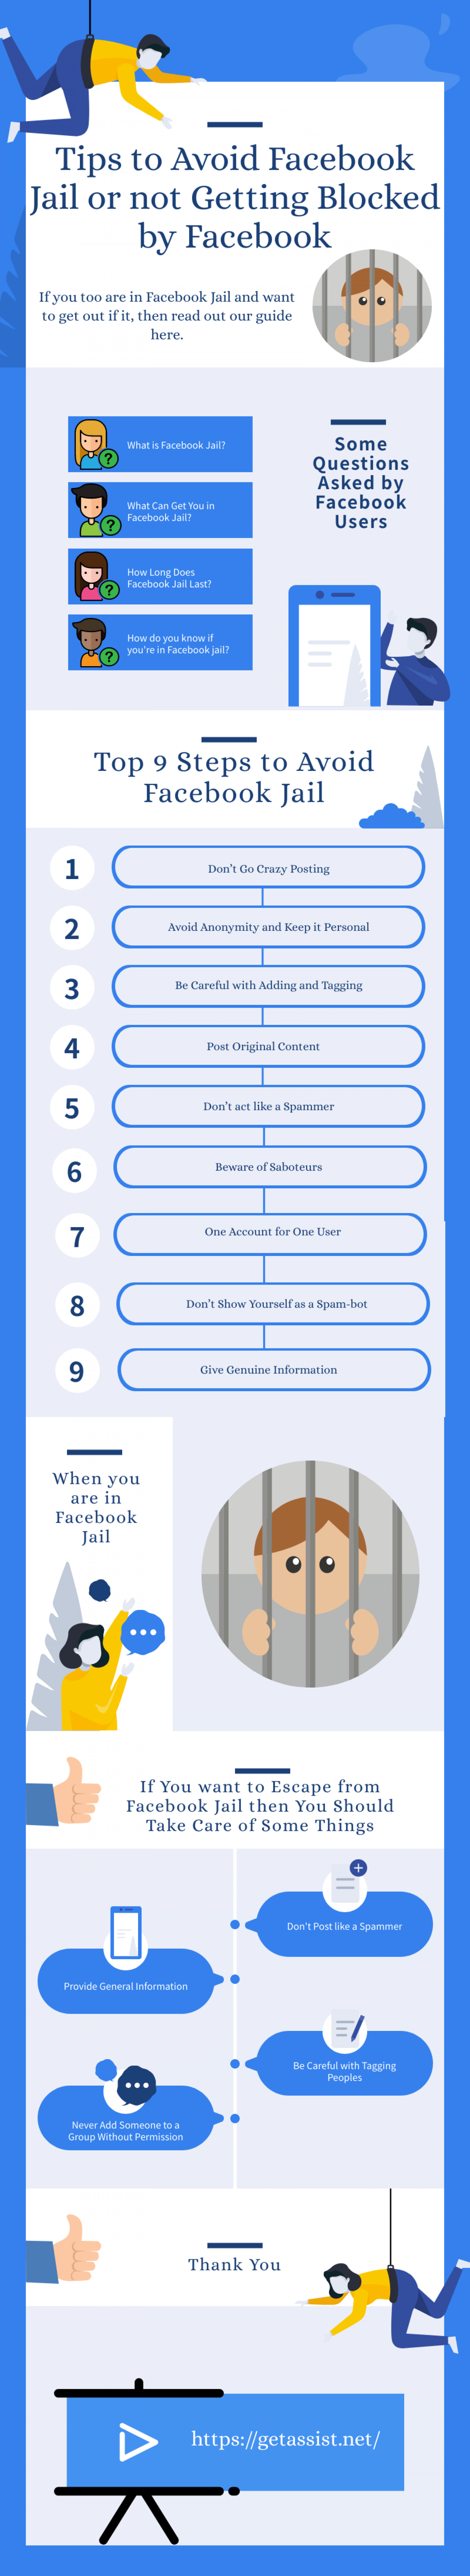 9 Instant Steps to Take to Avoid Facebook Jail Infographic